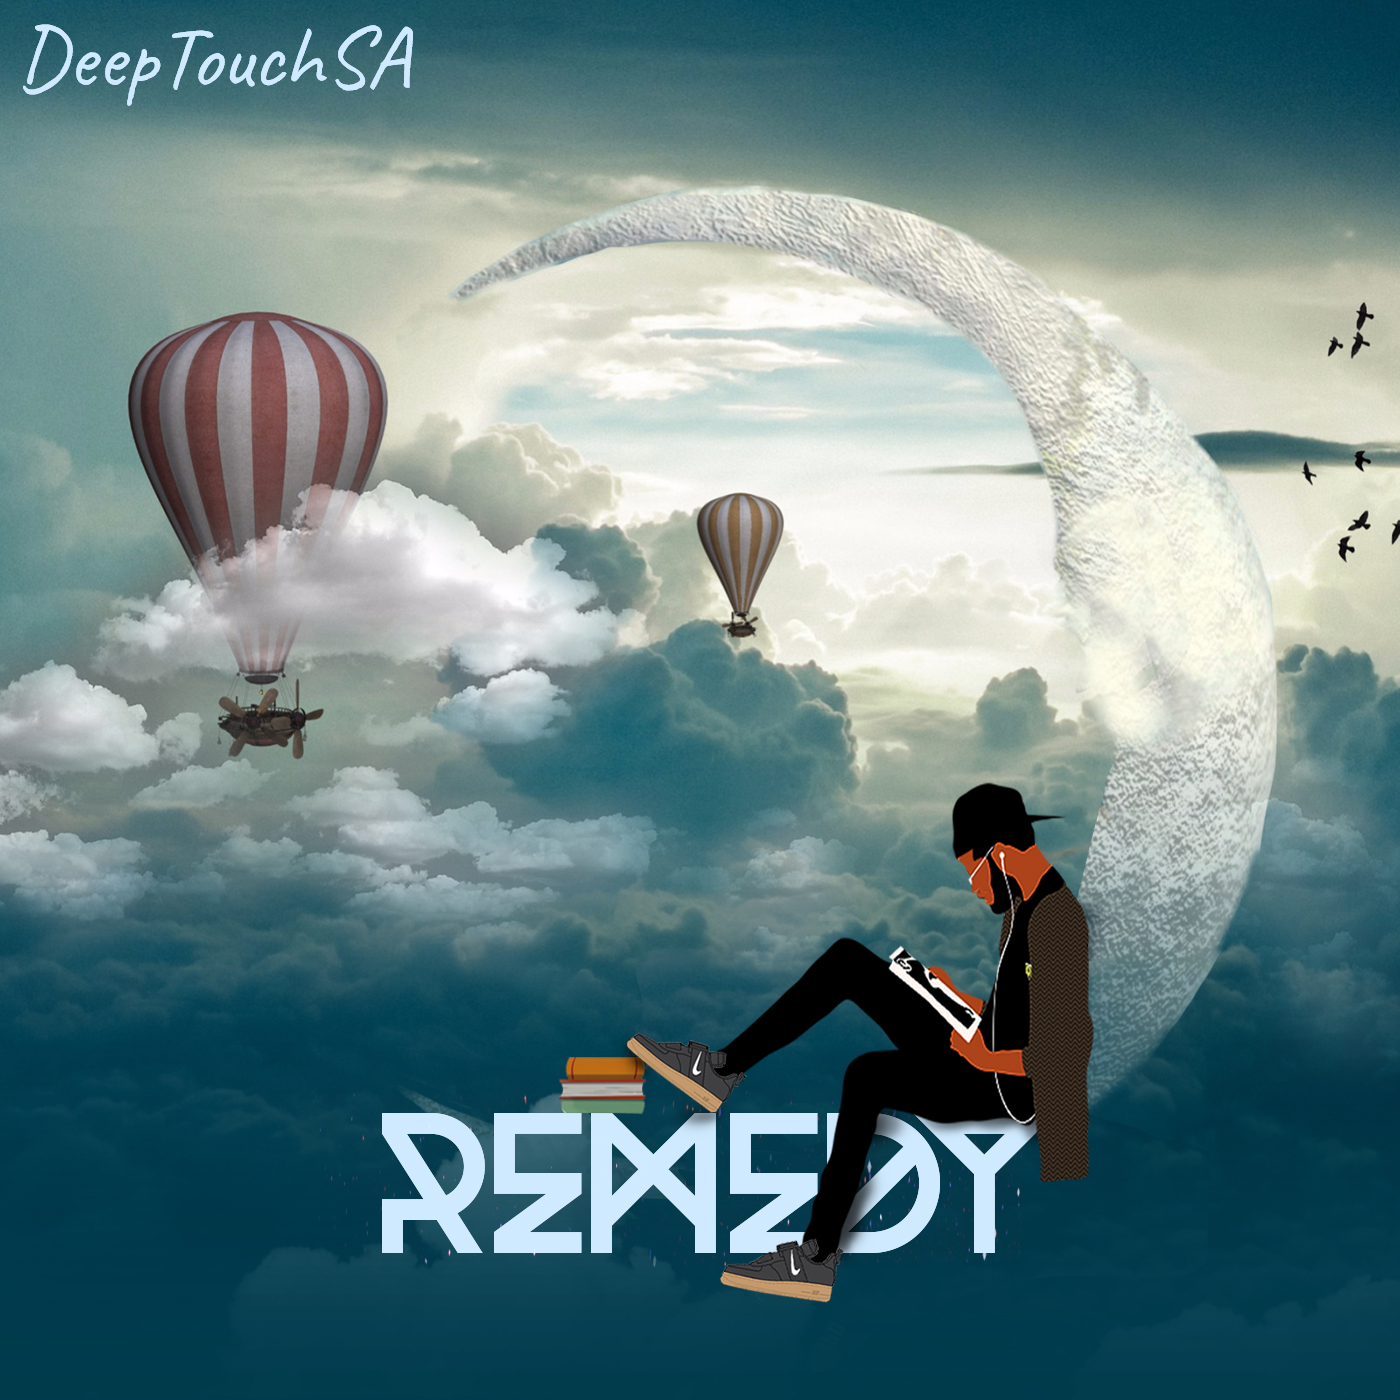 Remedy deeptouch SA